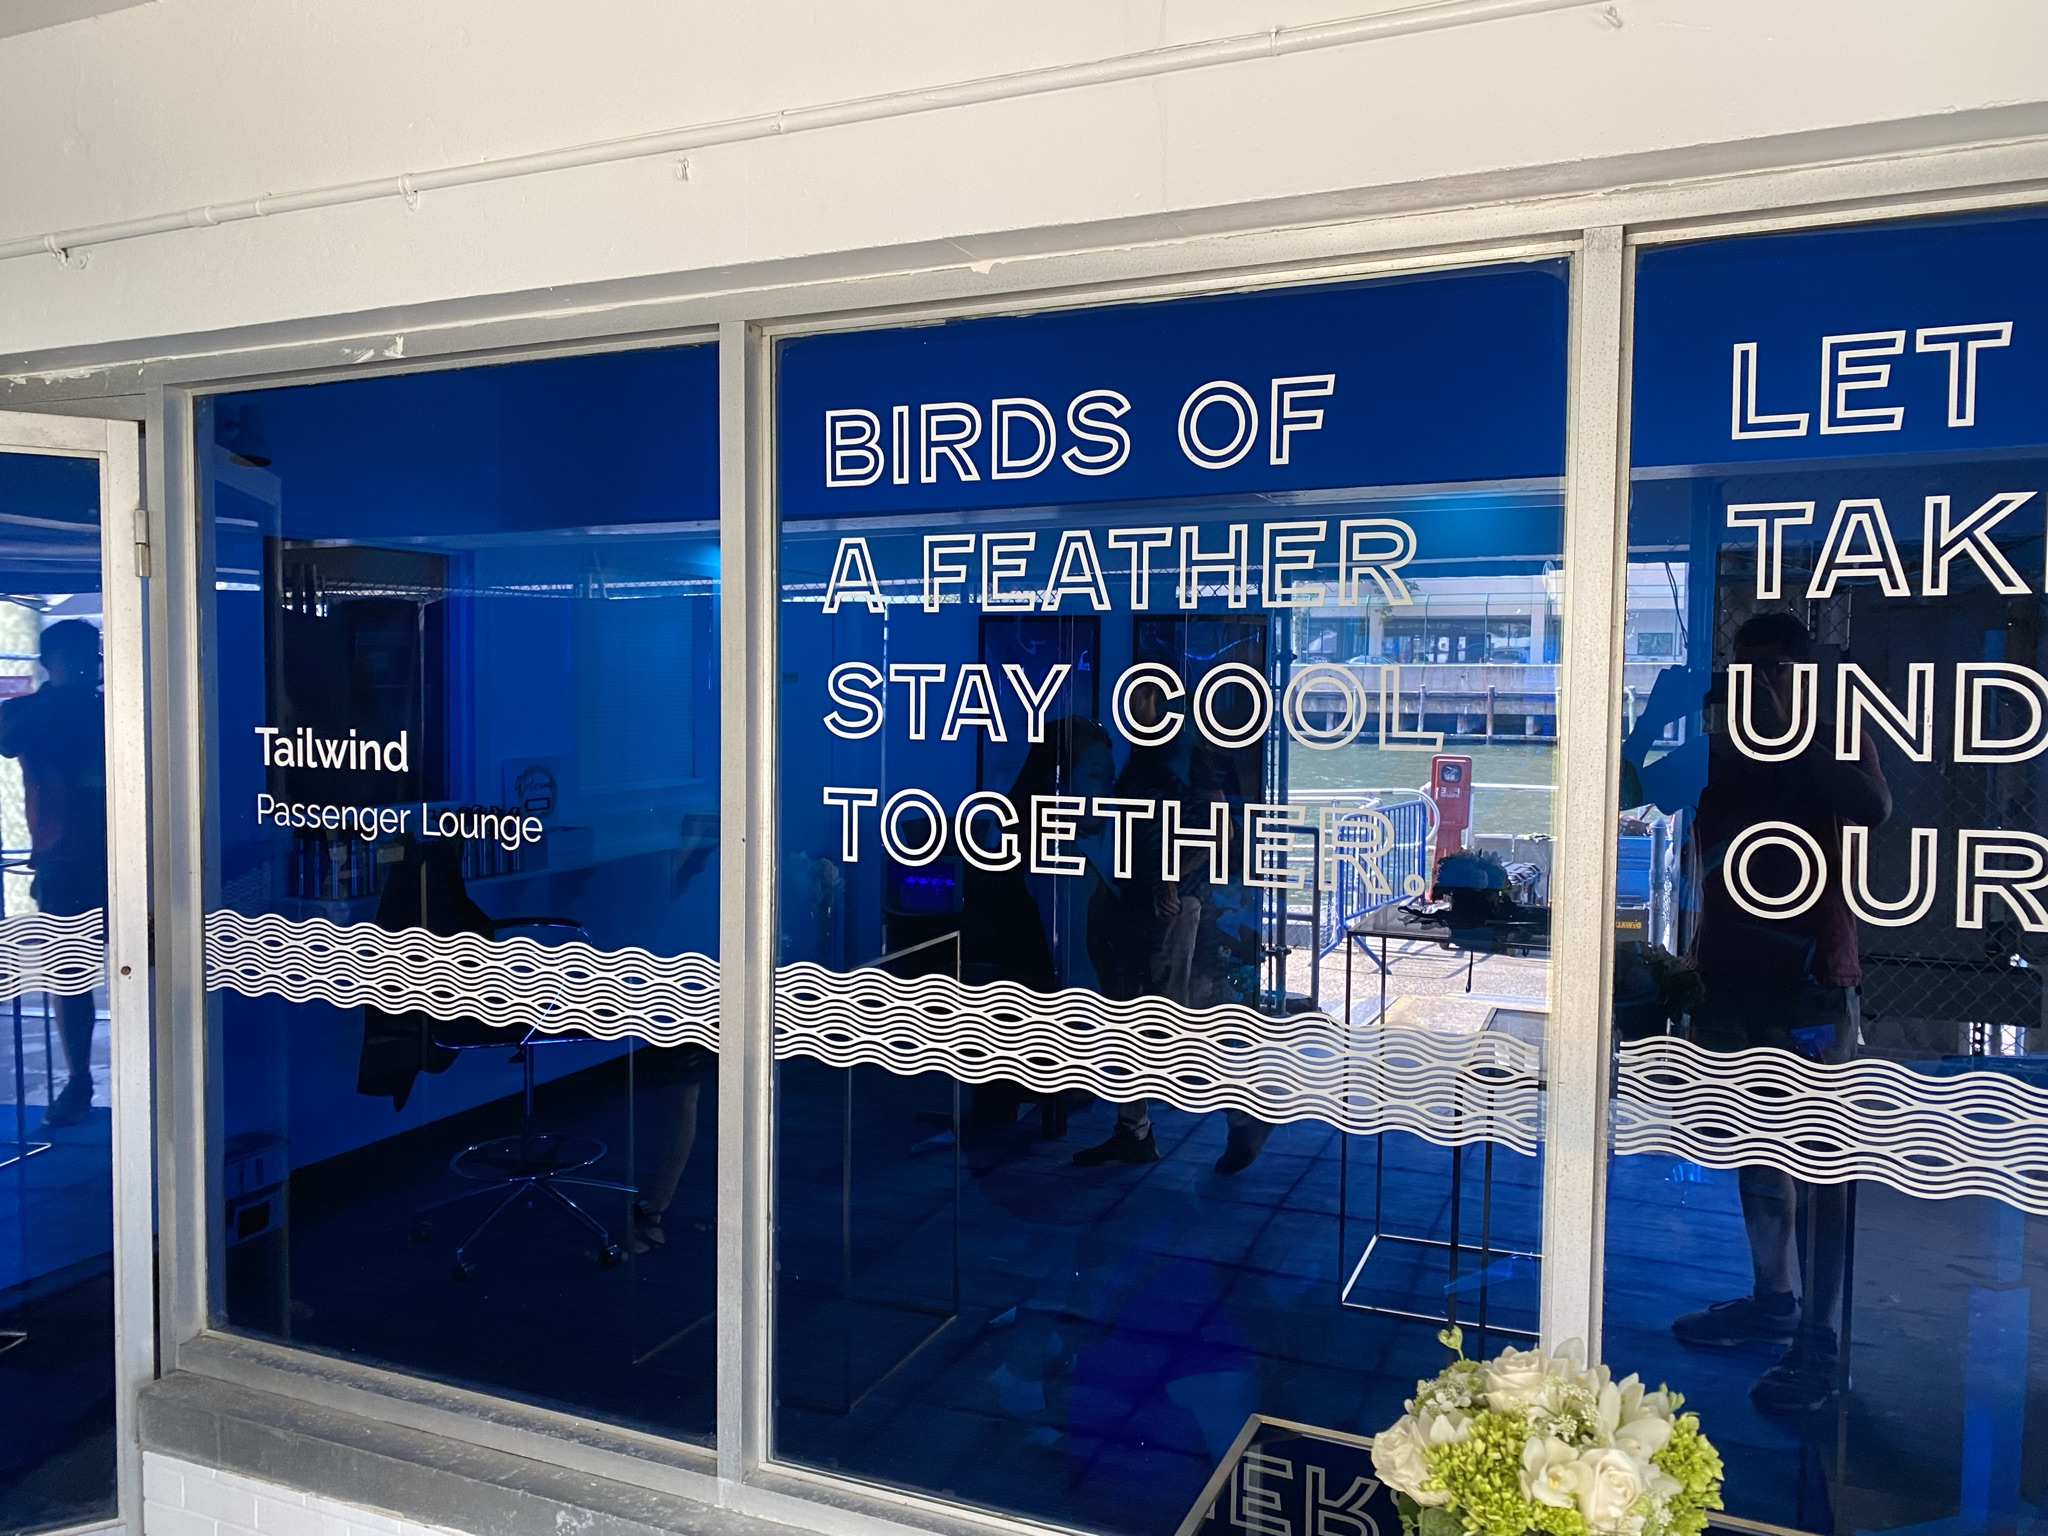 """The Tailwind lounge windows have signage saying: """"Birds of a feather stay cool together"""""""